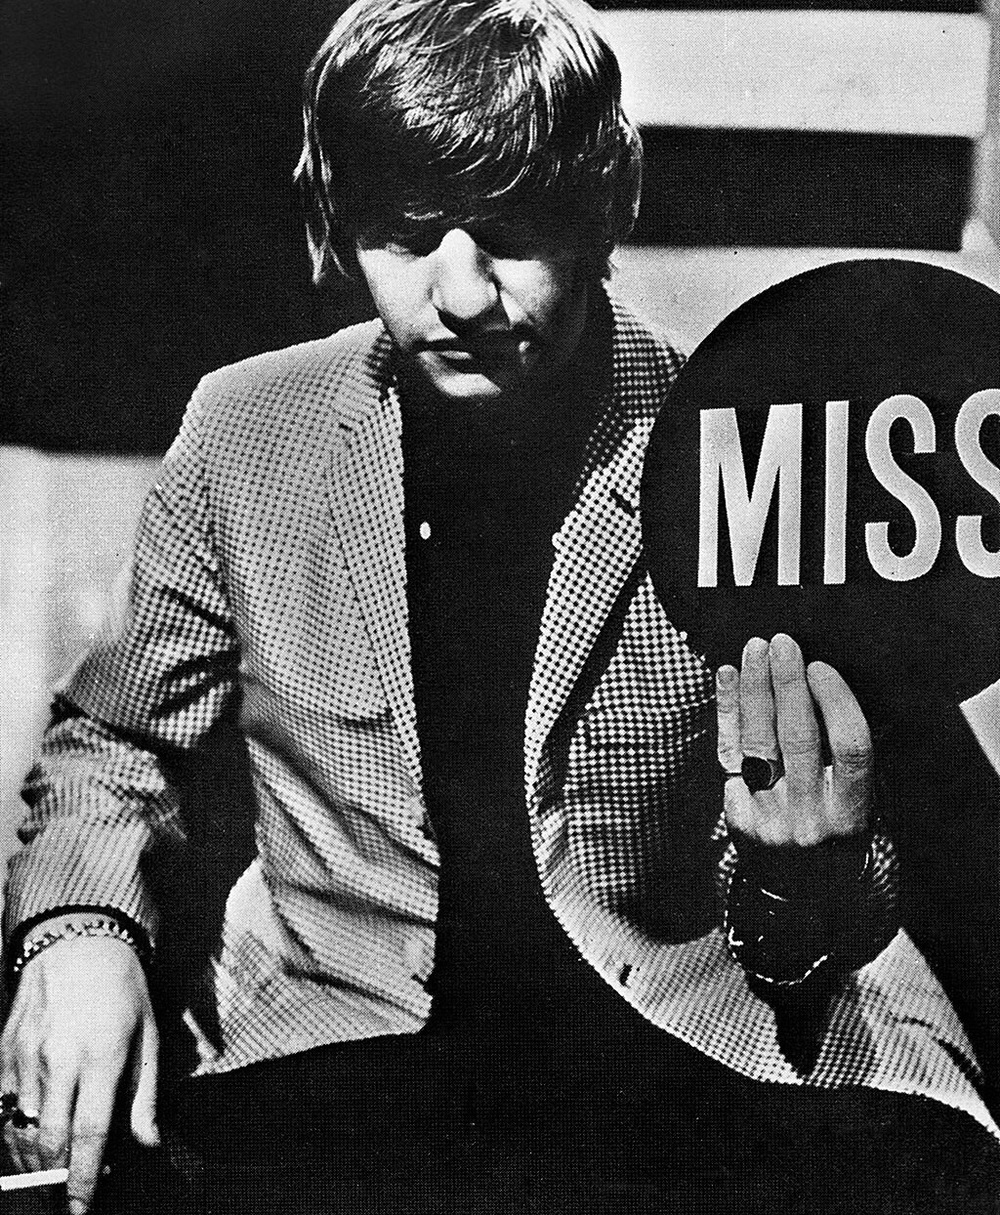 Ringo Starr on Juke Box Jury, December 1963.